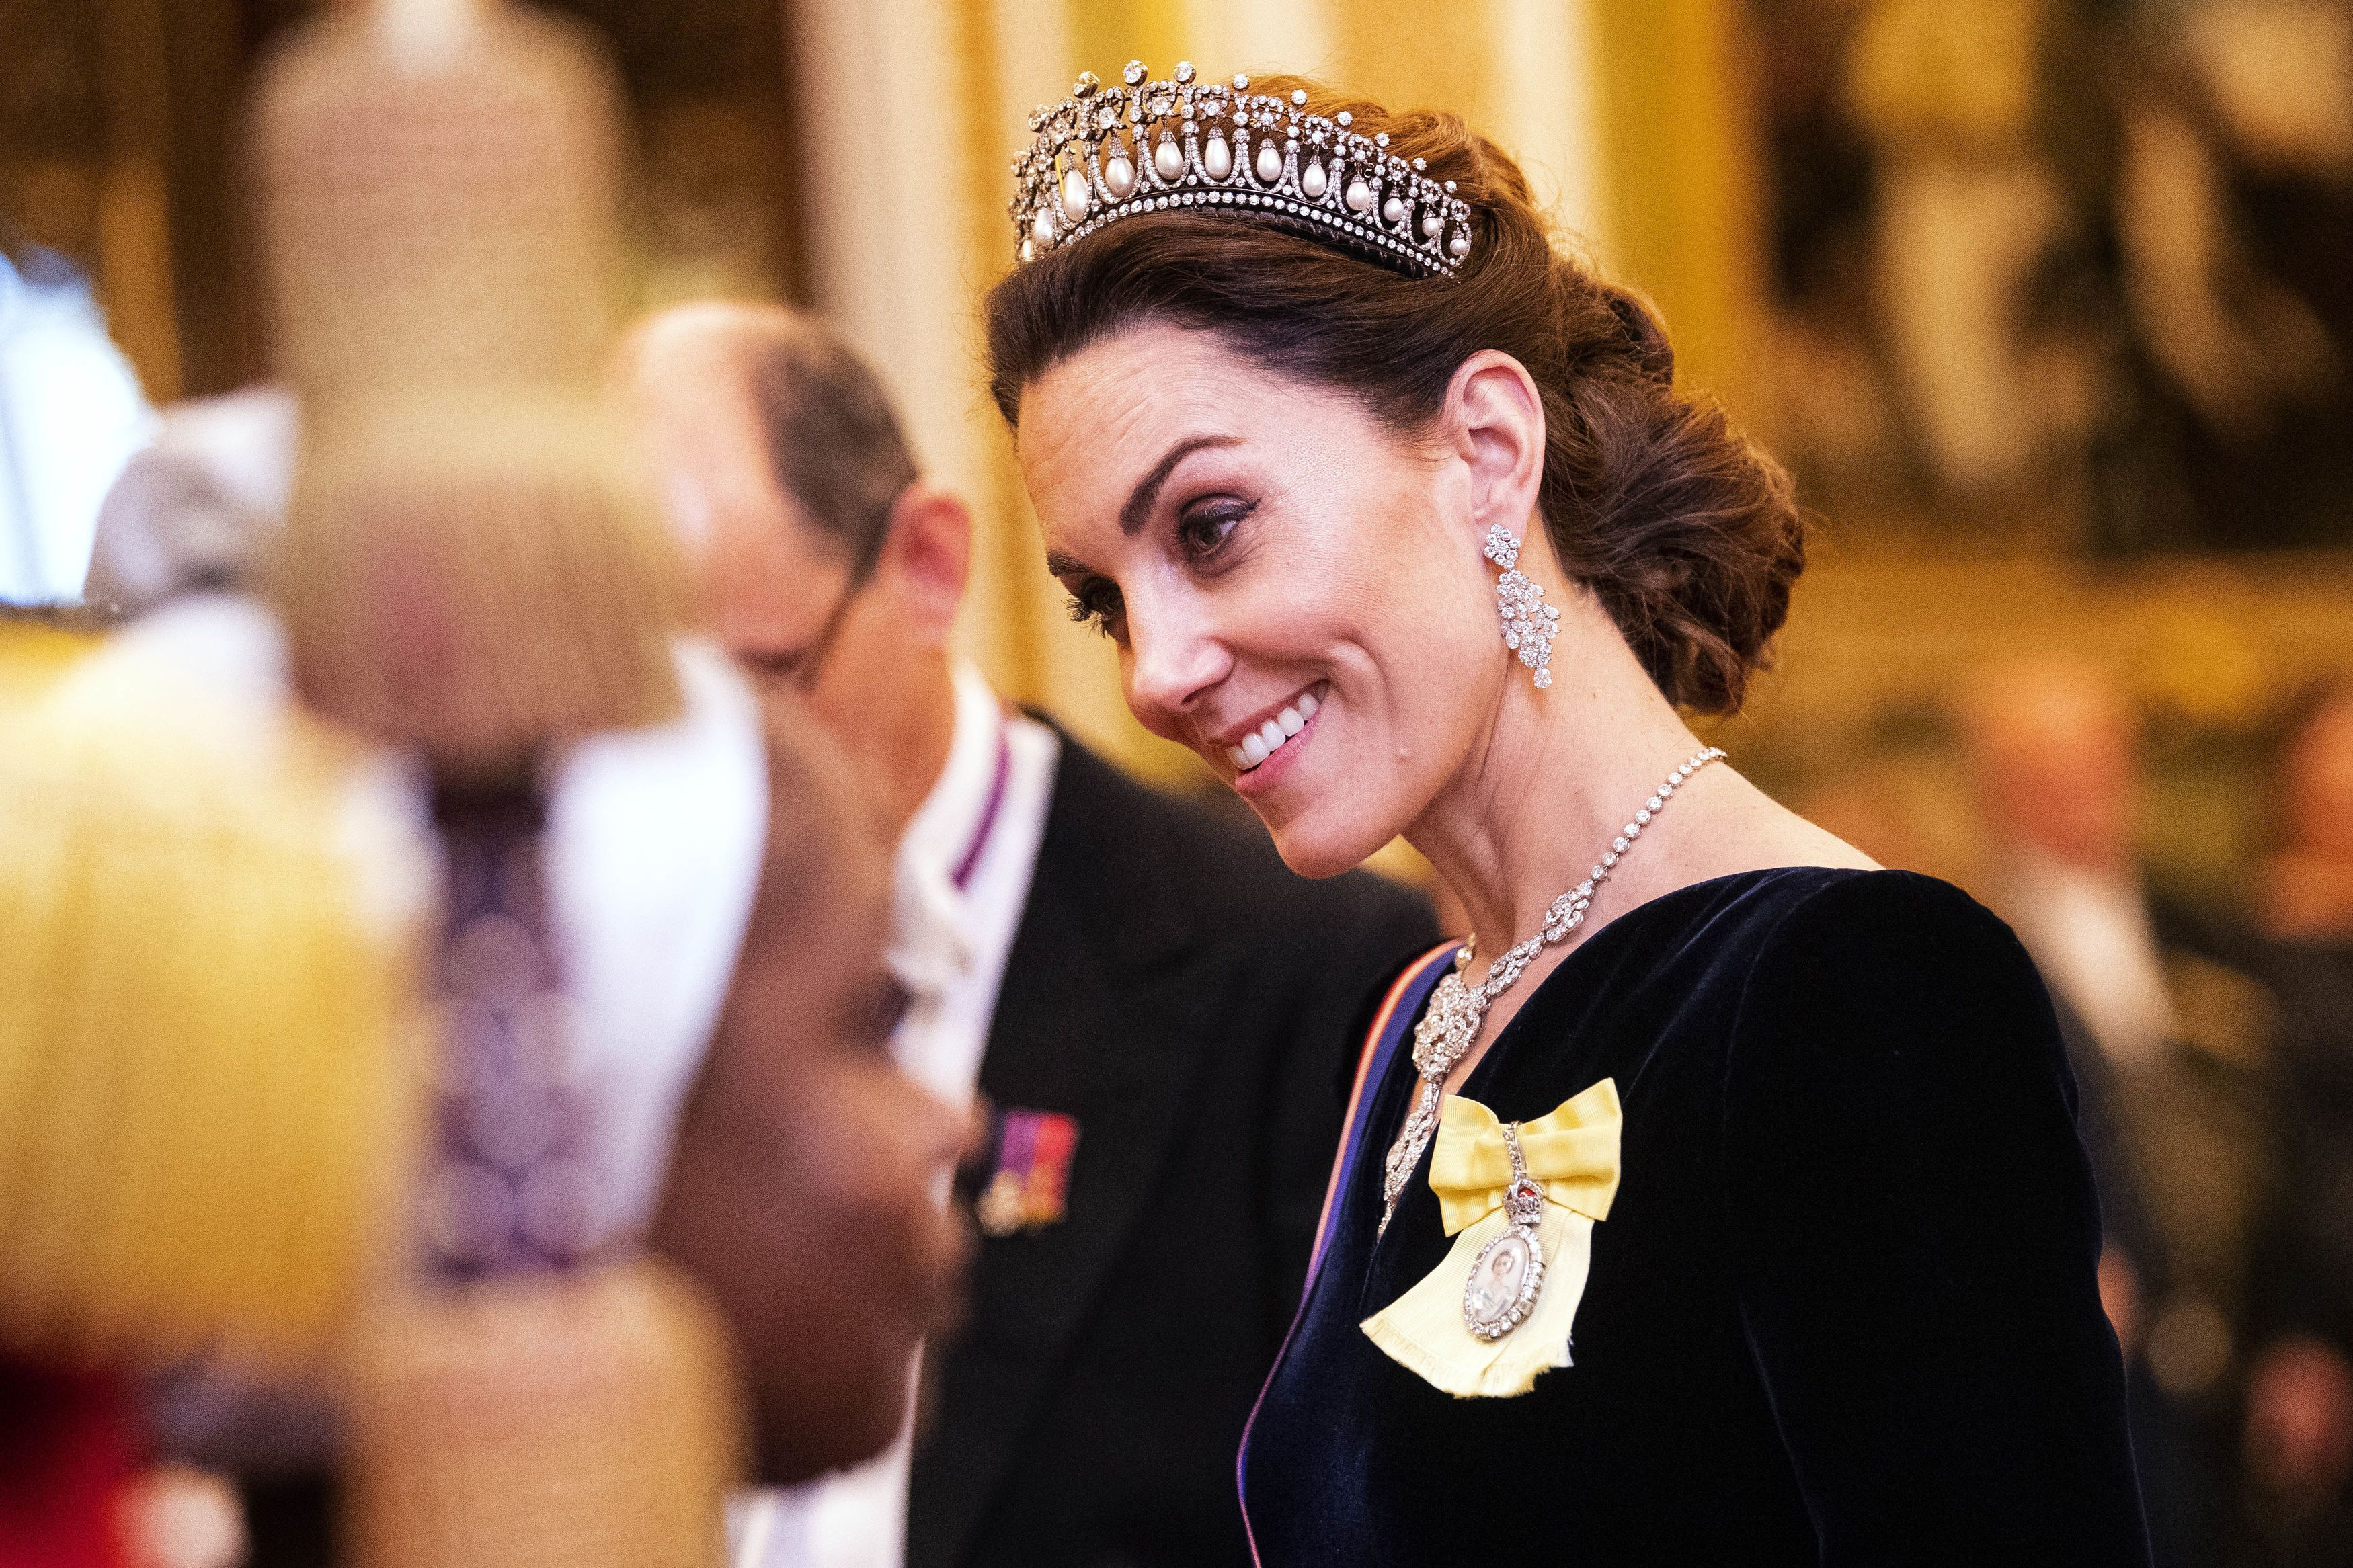 Kate Middleton Stuns in a Navy Alexander McQueen Gown and Tiara at the Queen's Diplomatic Corps Reception